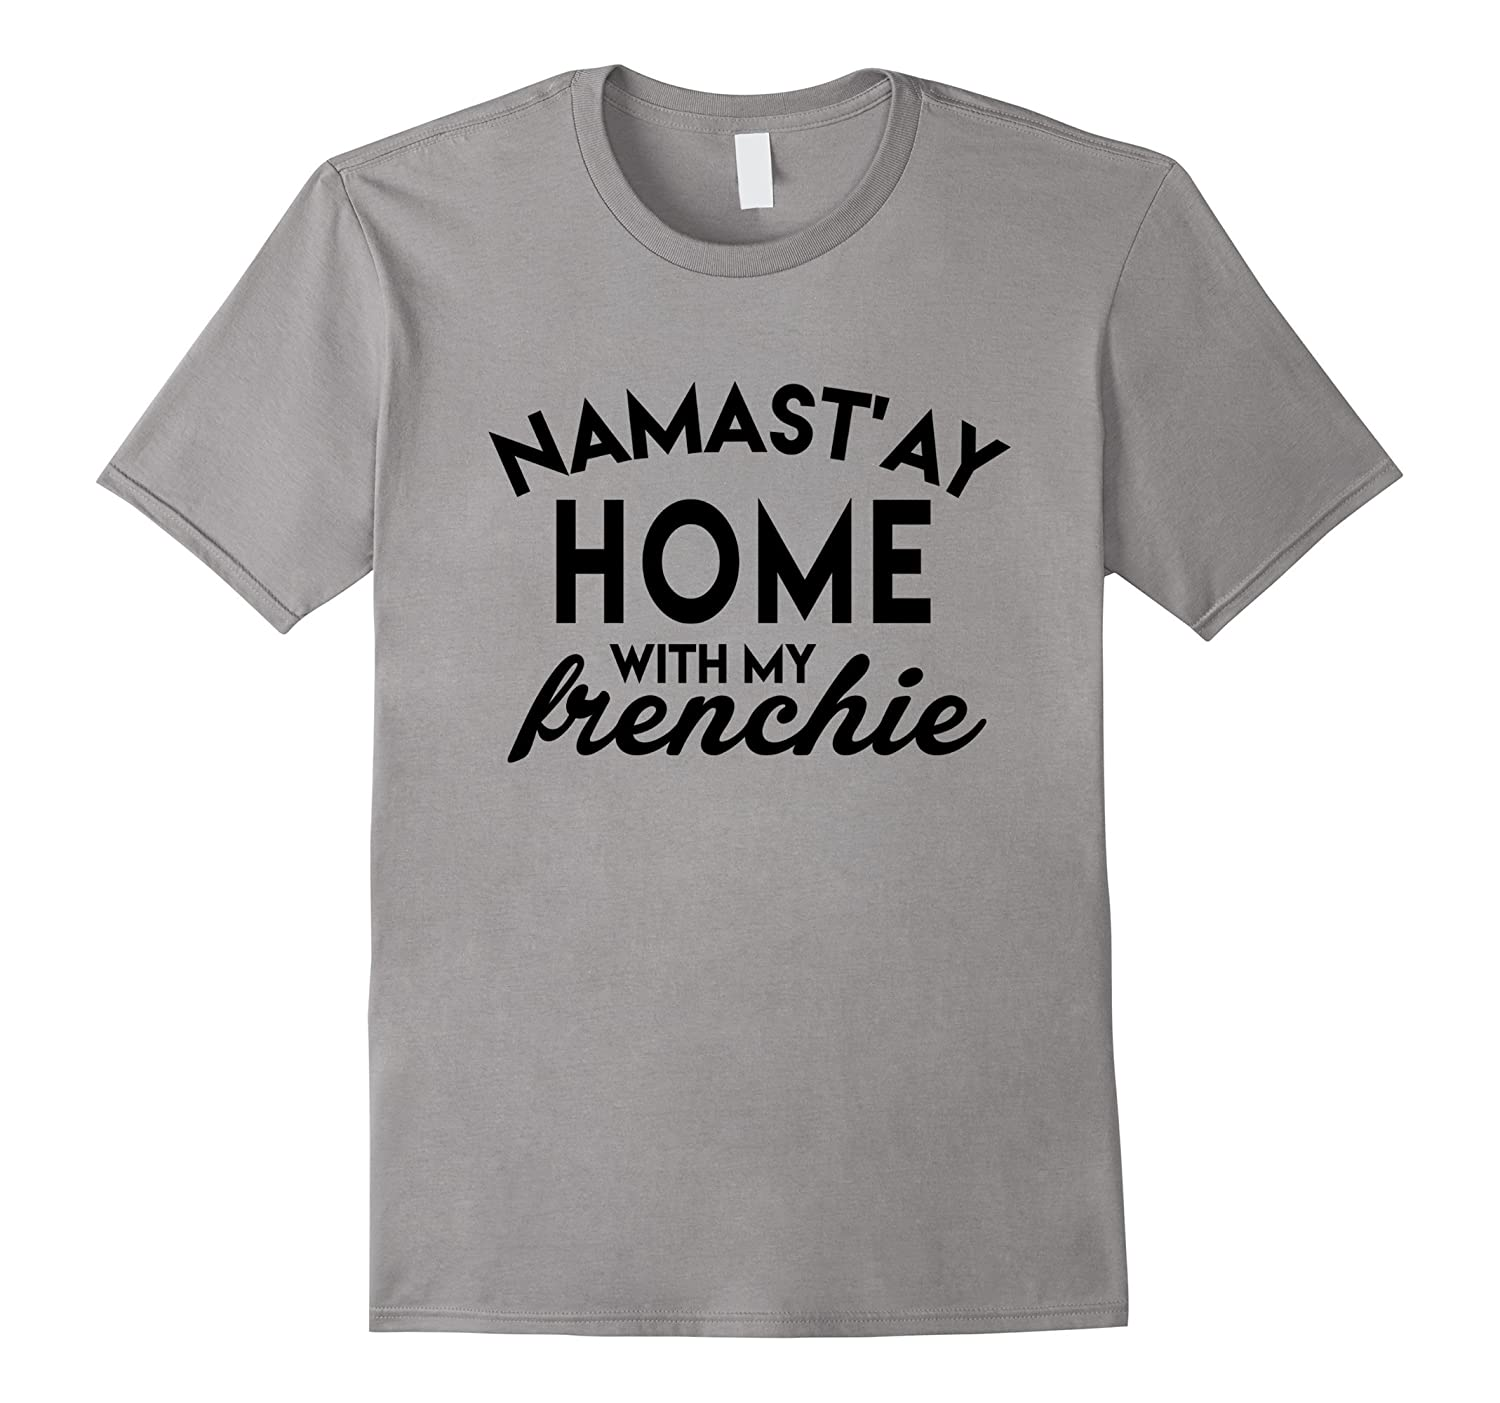 Funny French Bulldog Shirt Great Gift For Frenchie Owners